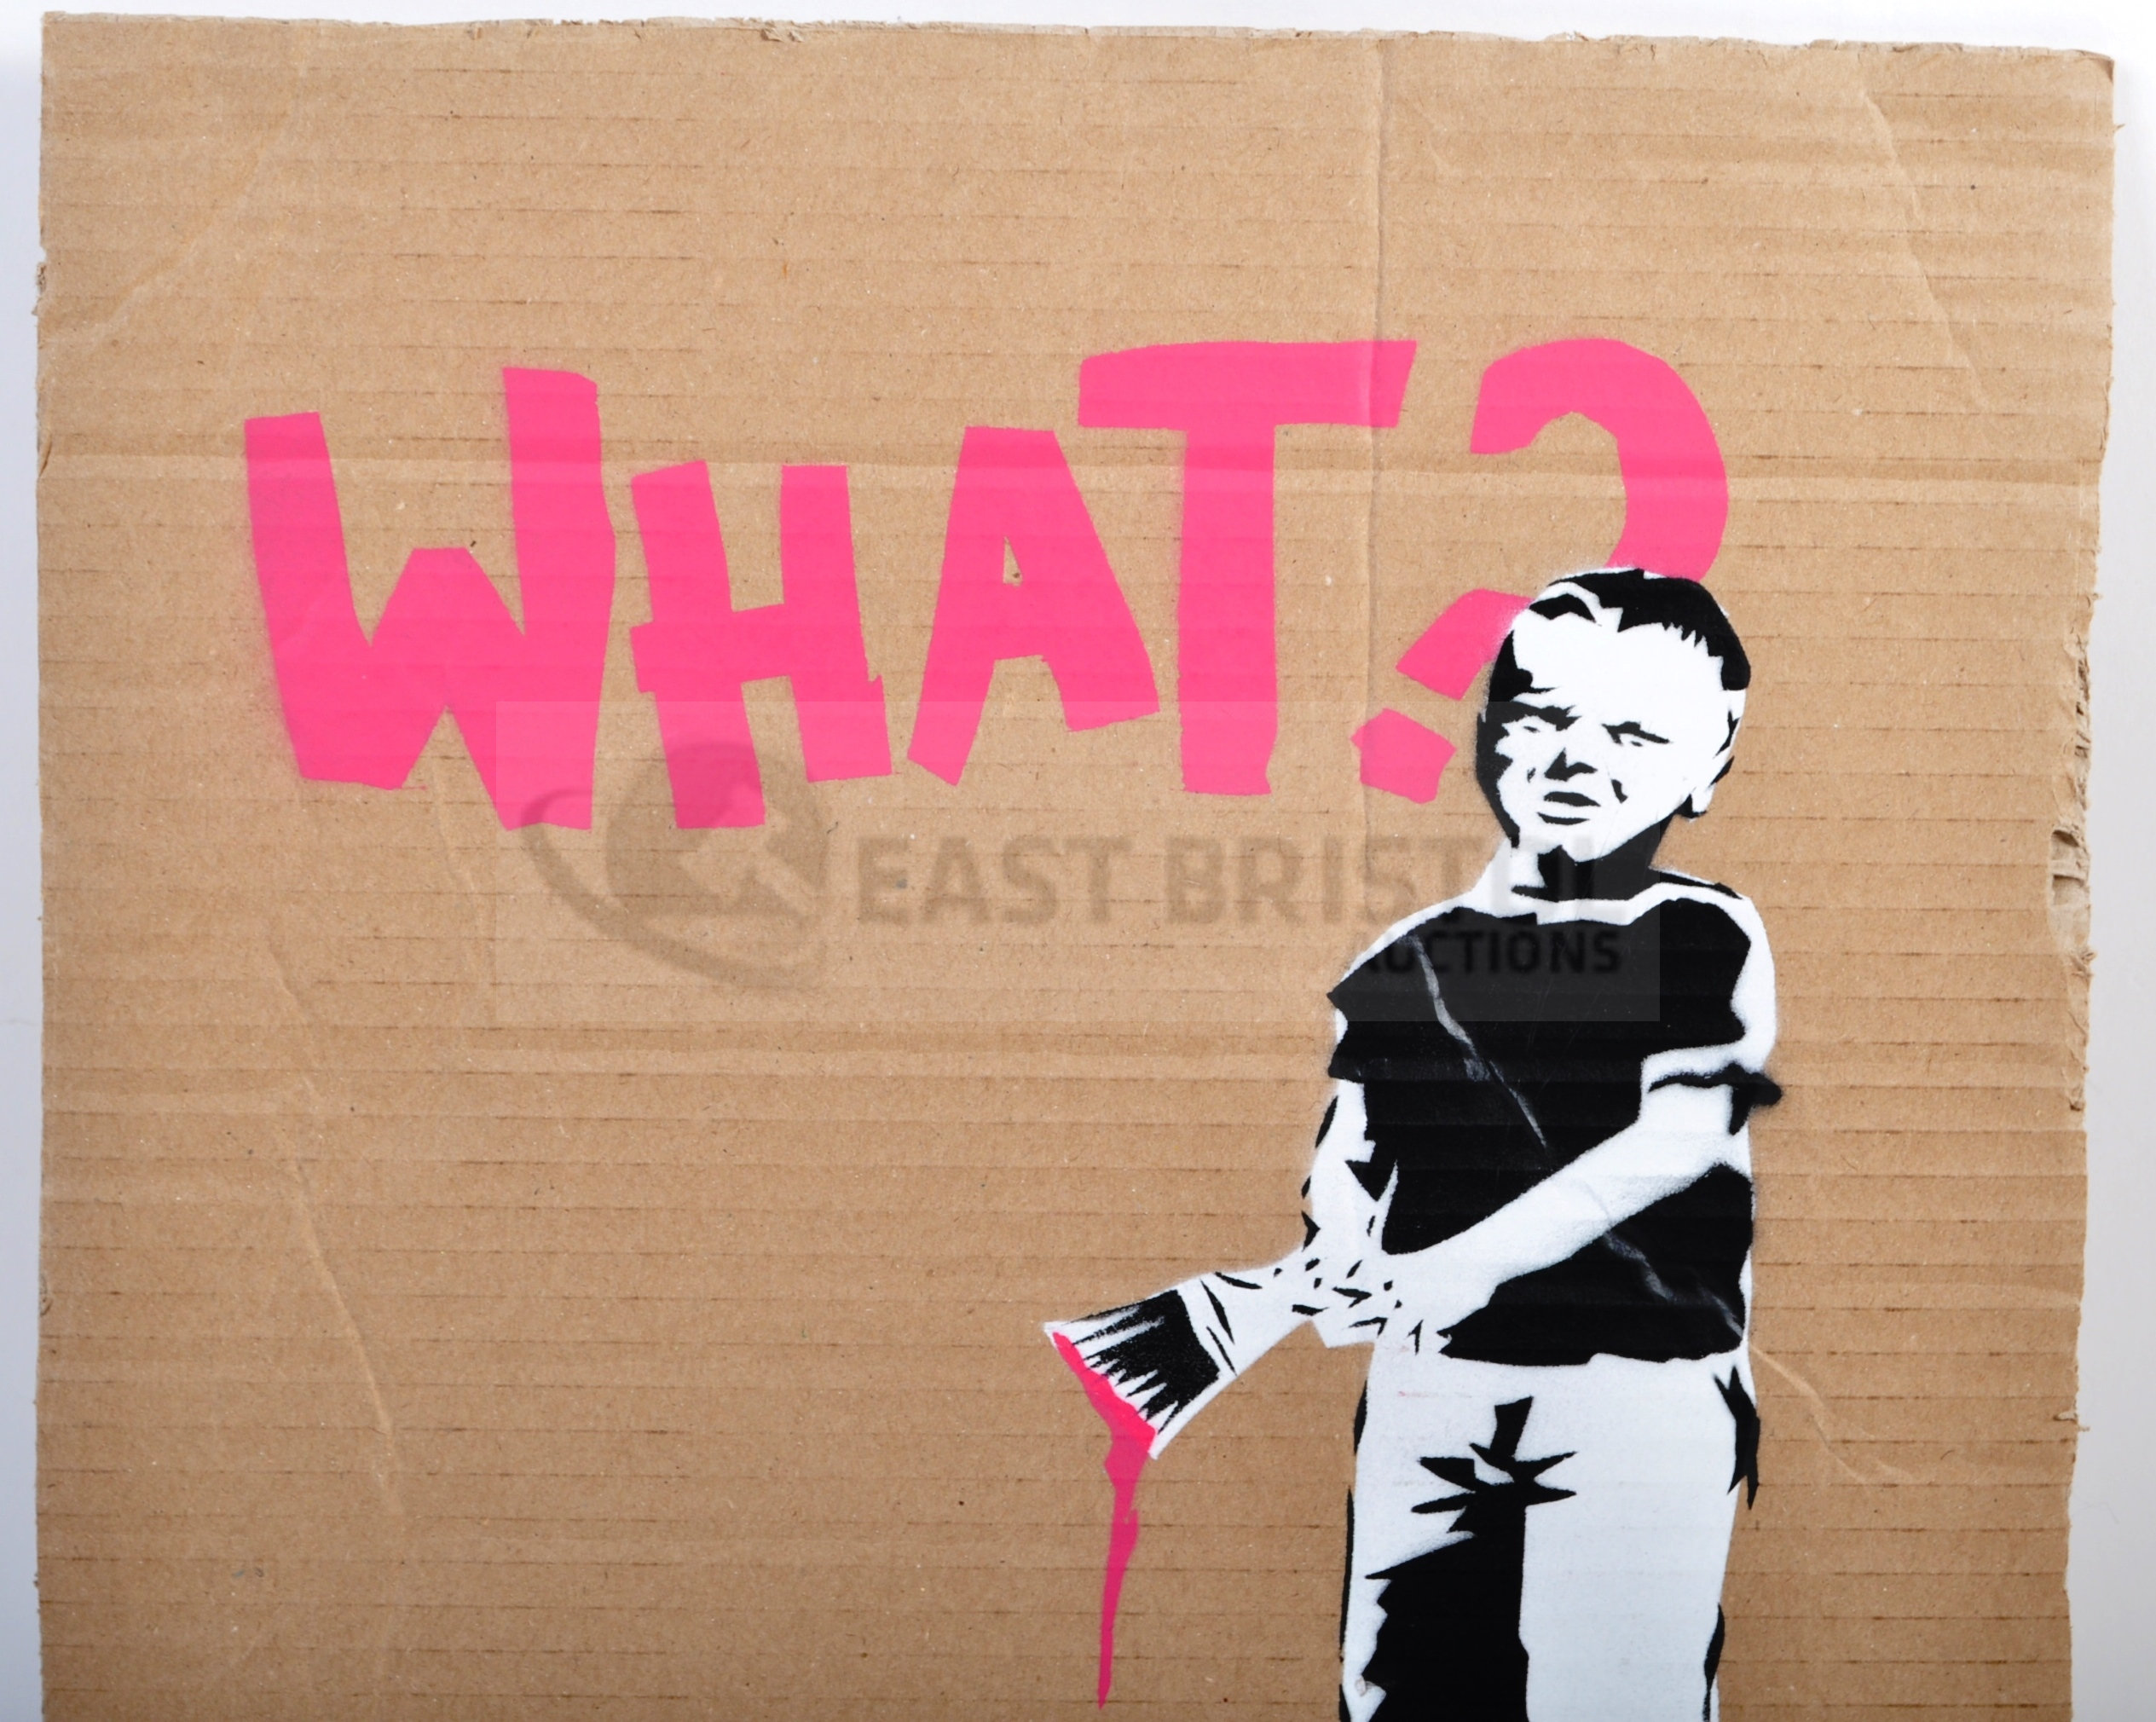 BANKSY - DISMALAND 2015 - WHAT? - Image 2 of 3